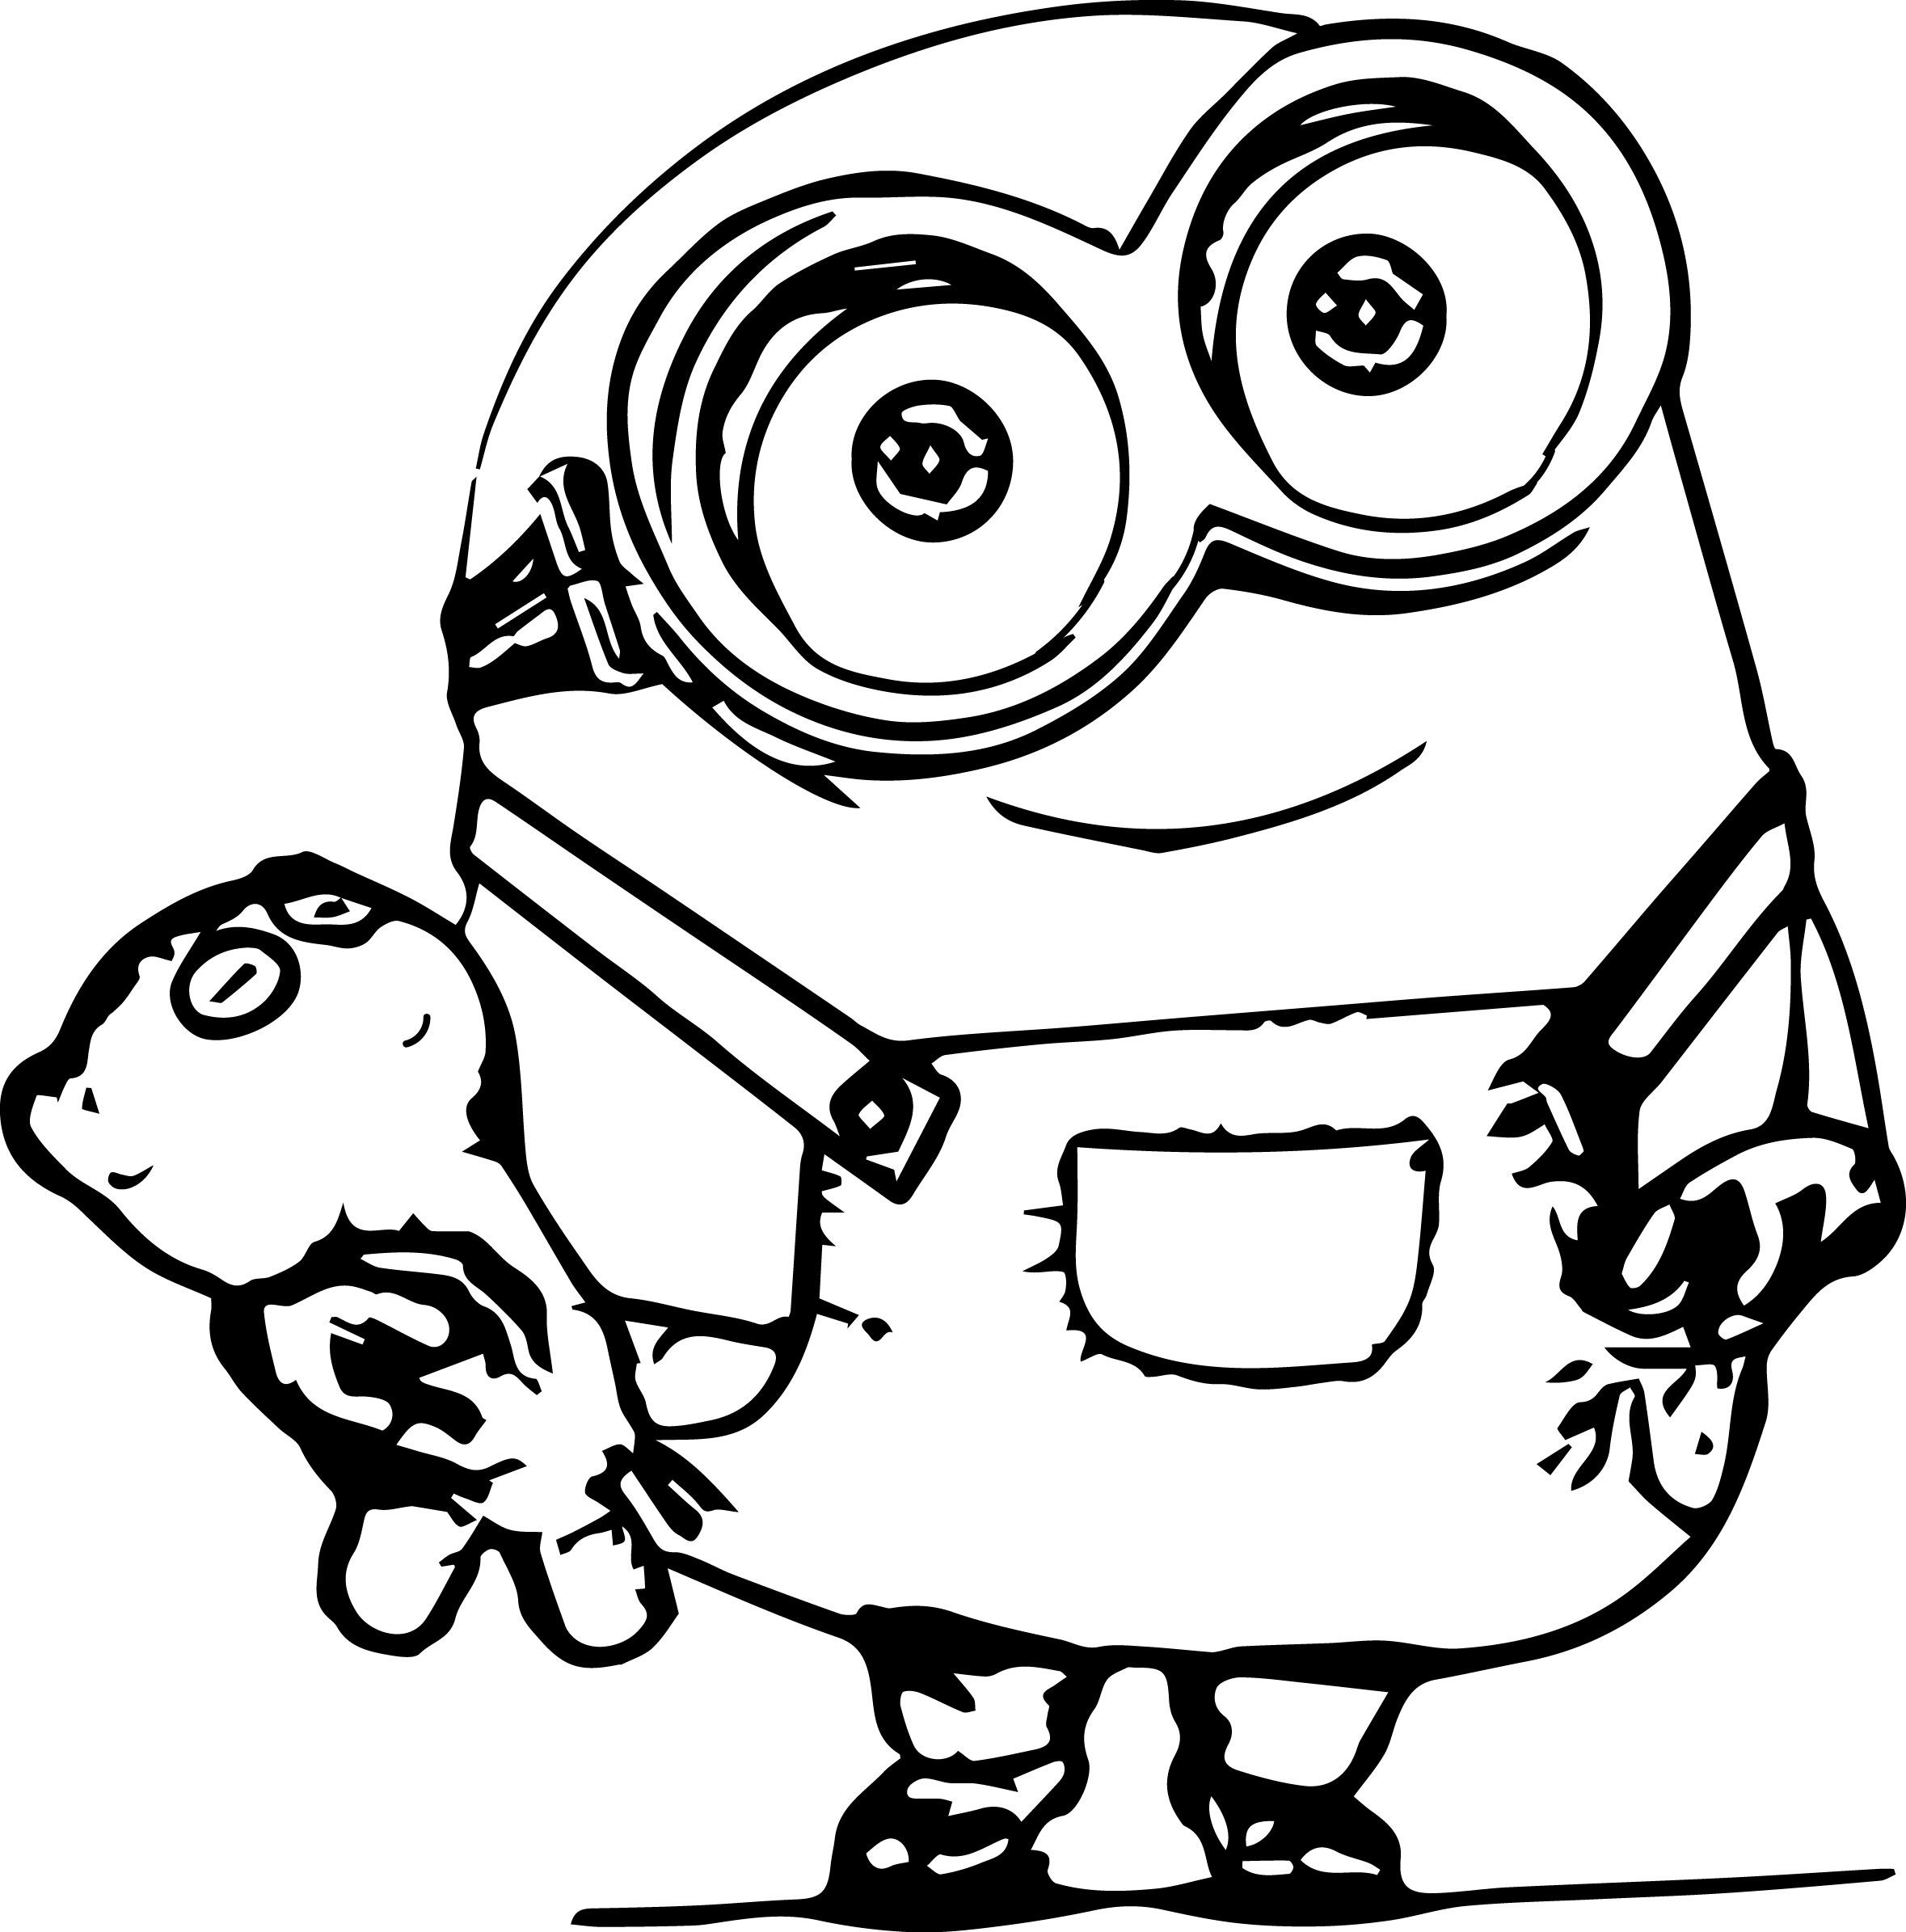 Minions Coloring Pages Wecoloringpage Minion Coloring Pages Minions Coloring Pages Cute Coloring Pages